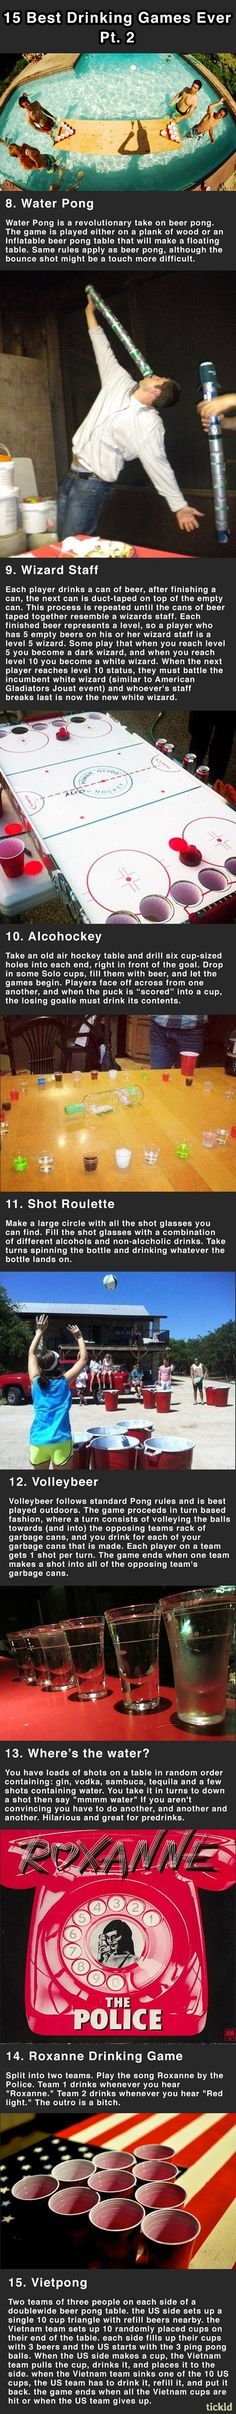 Drinking games can get you f**ked up....